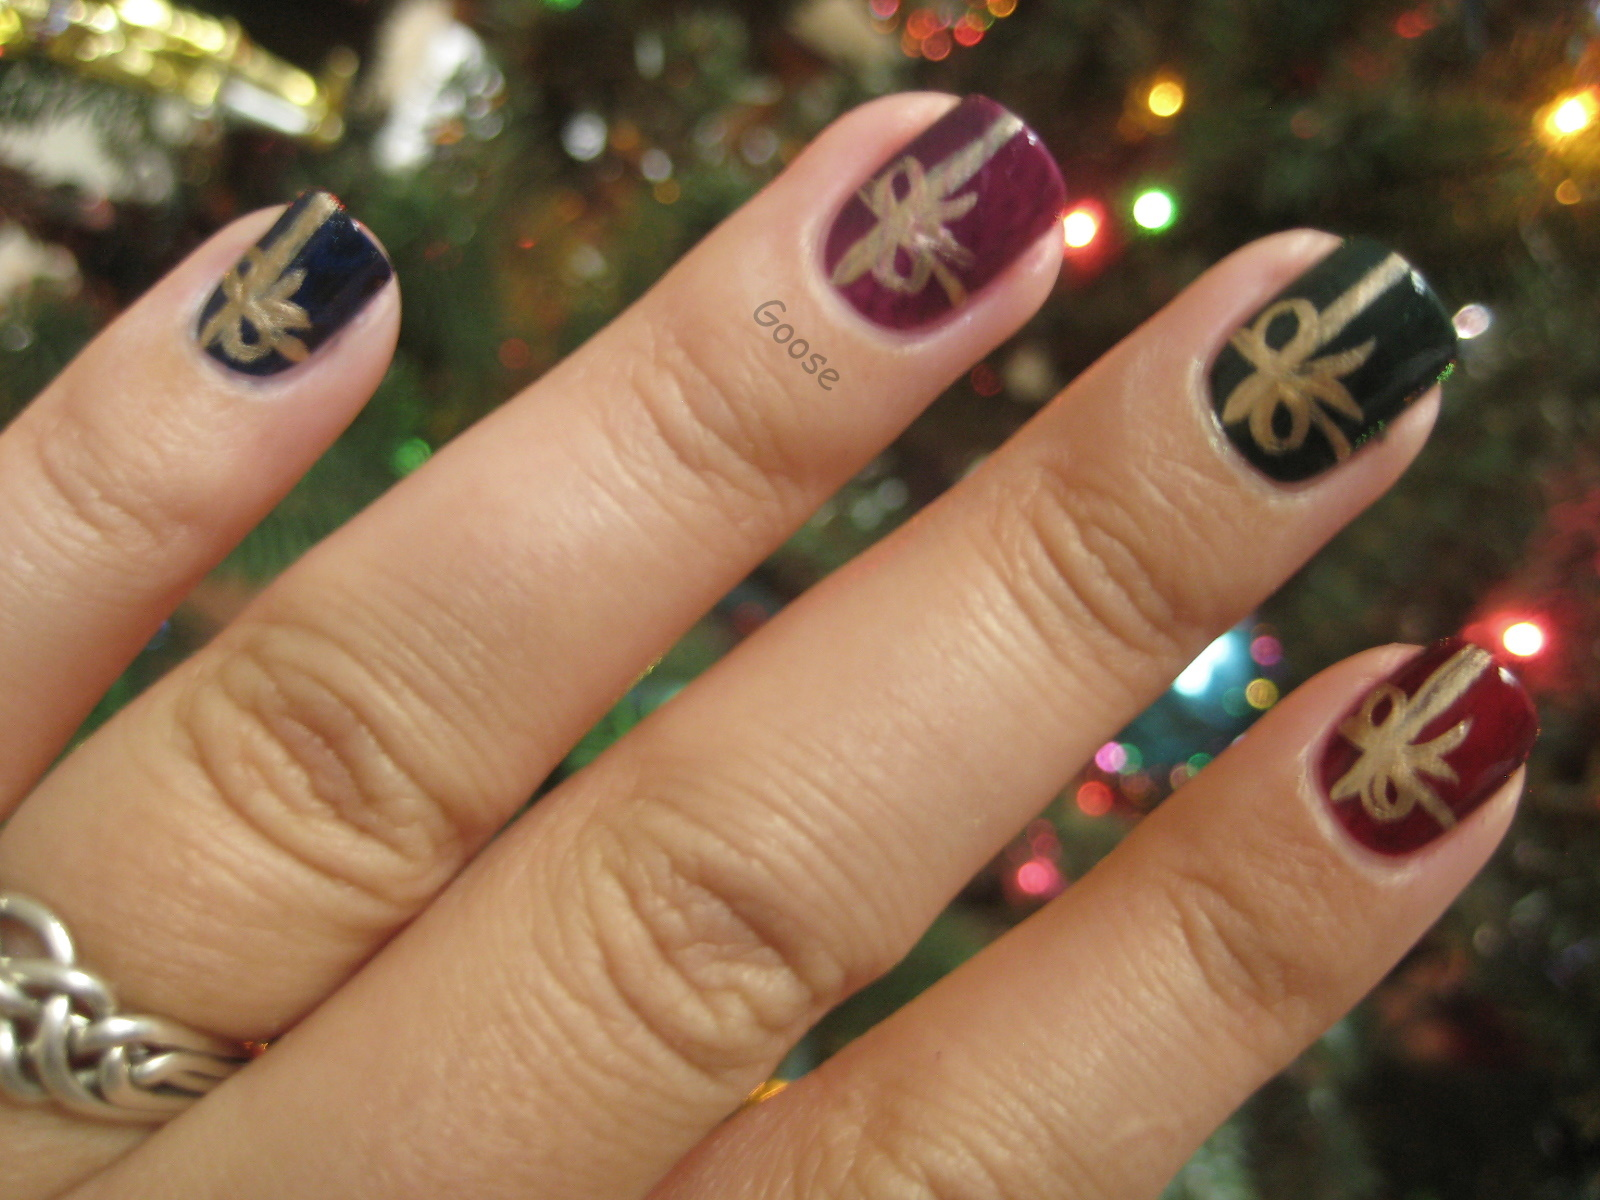 Gooses Glitter The 12 Days Of Christmas Nails Day 5 Presents